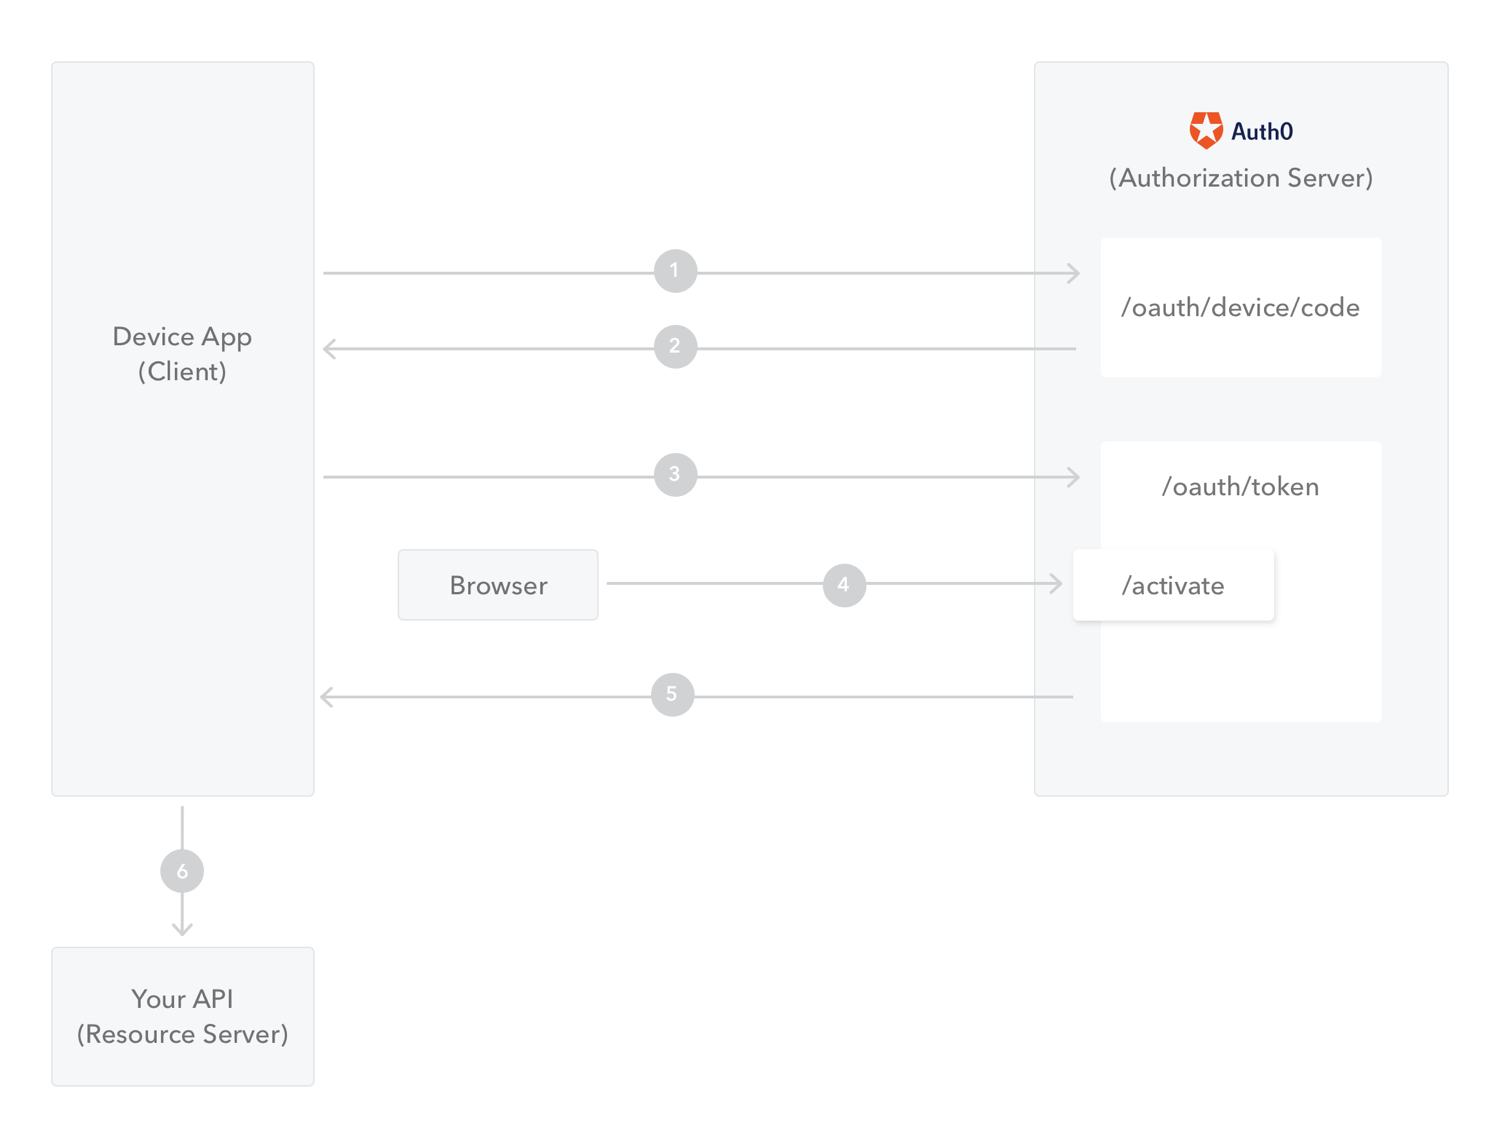 Overview of OAuth 2.0 Device Flow with API calls